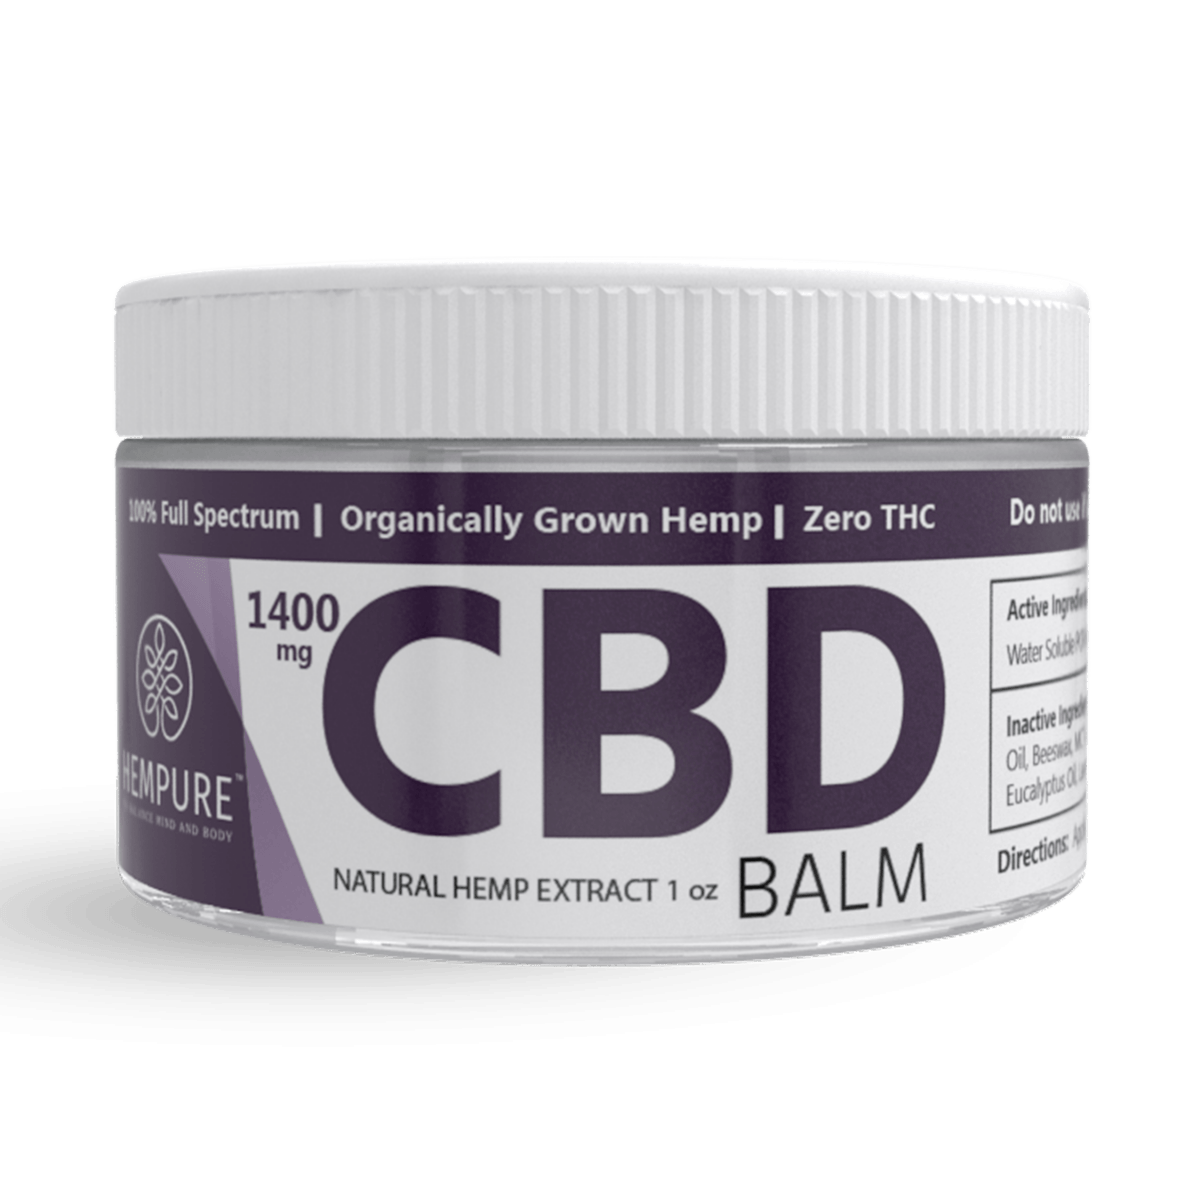 Hempure CBD Balm coupon